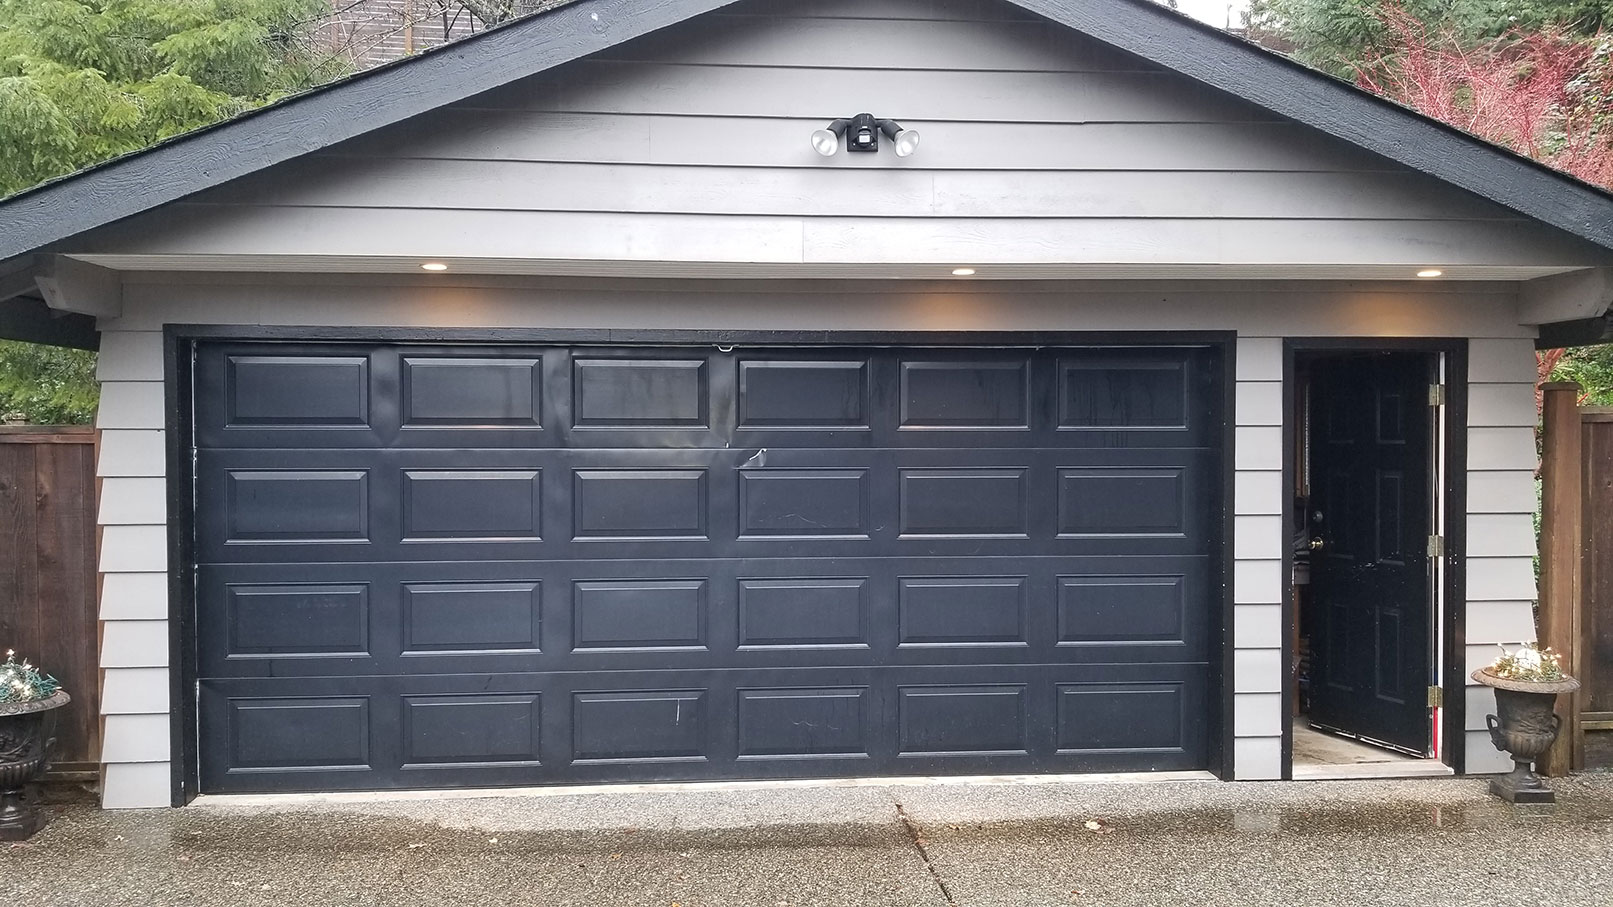 1. Residential Garage Door Replacement Before